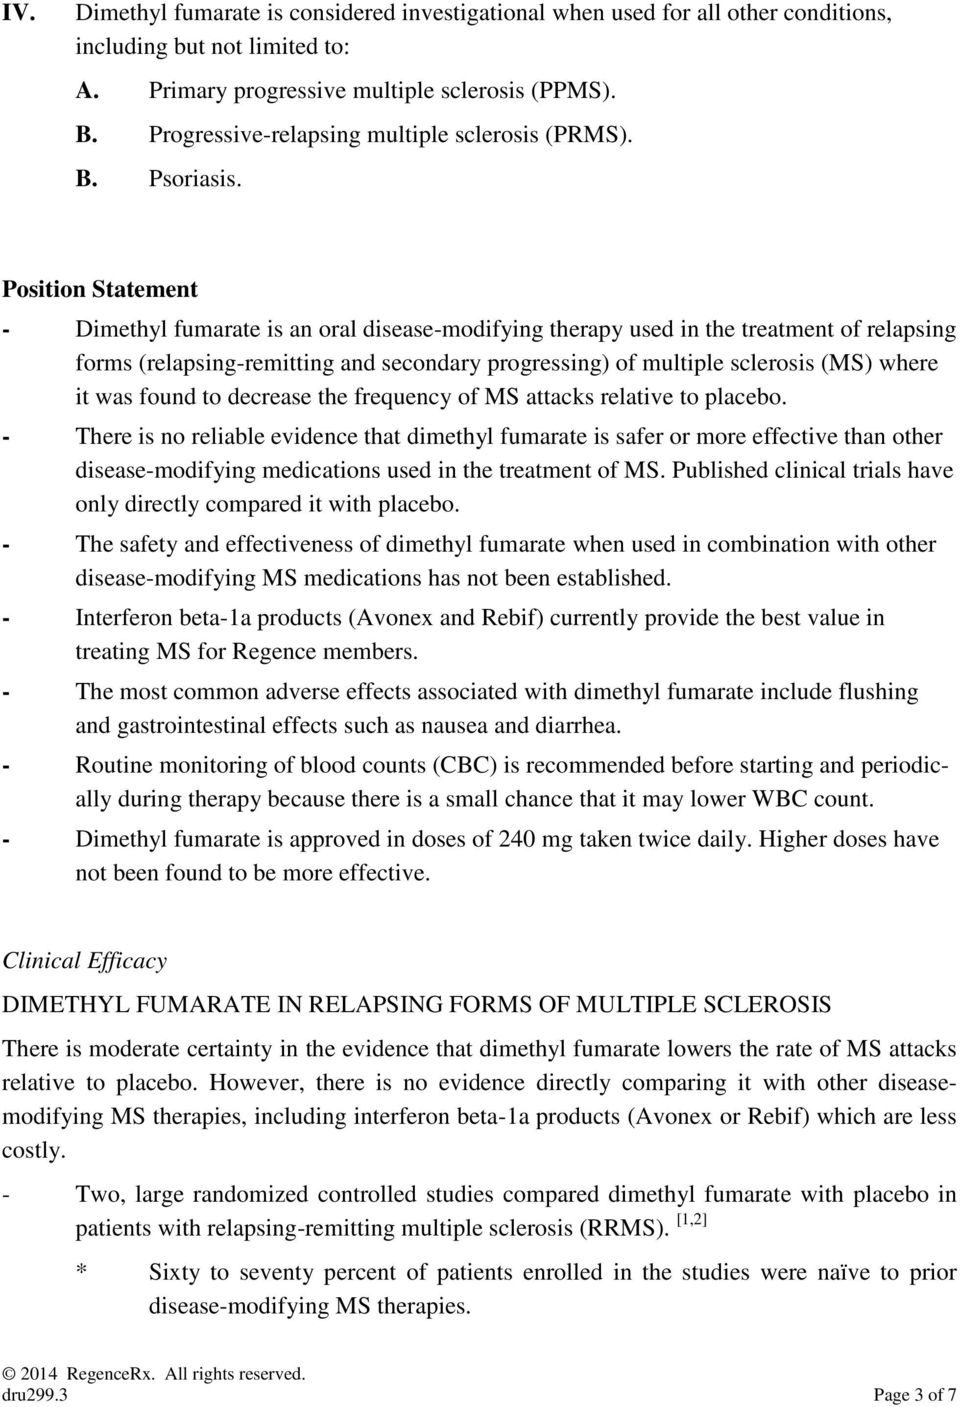 Position Statement - Dimethyl fumarate is an oral disease-modifying therapy used in the treatment of relapsing forms (relapsing-remitting and secondary progressing) of multiple sclerosis (MS) where